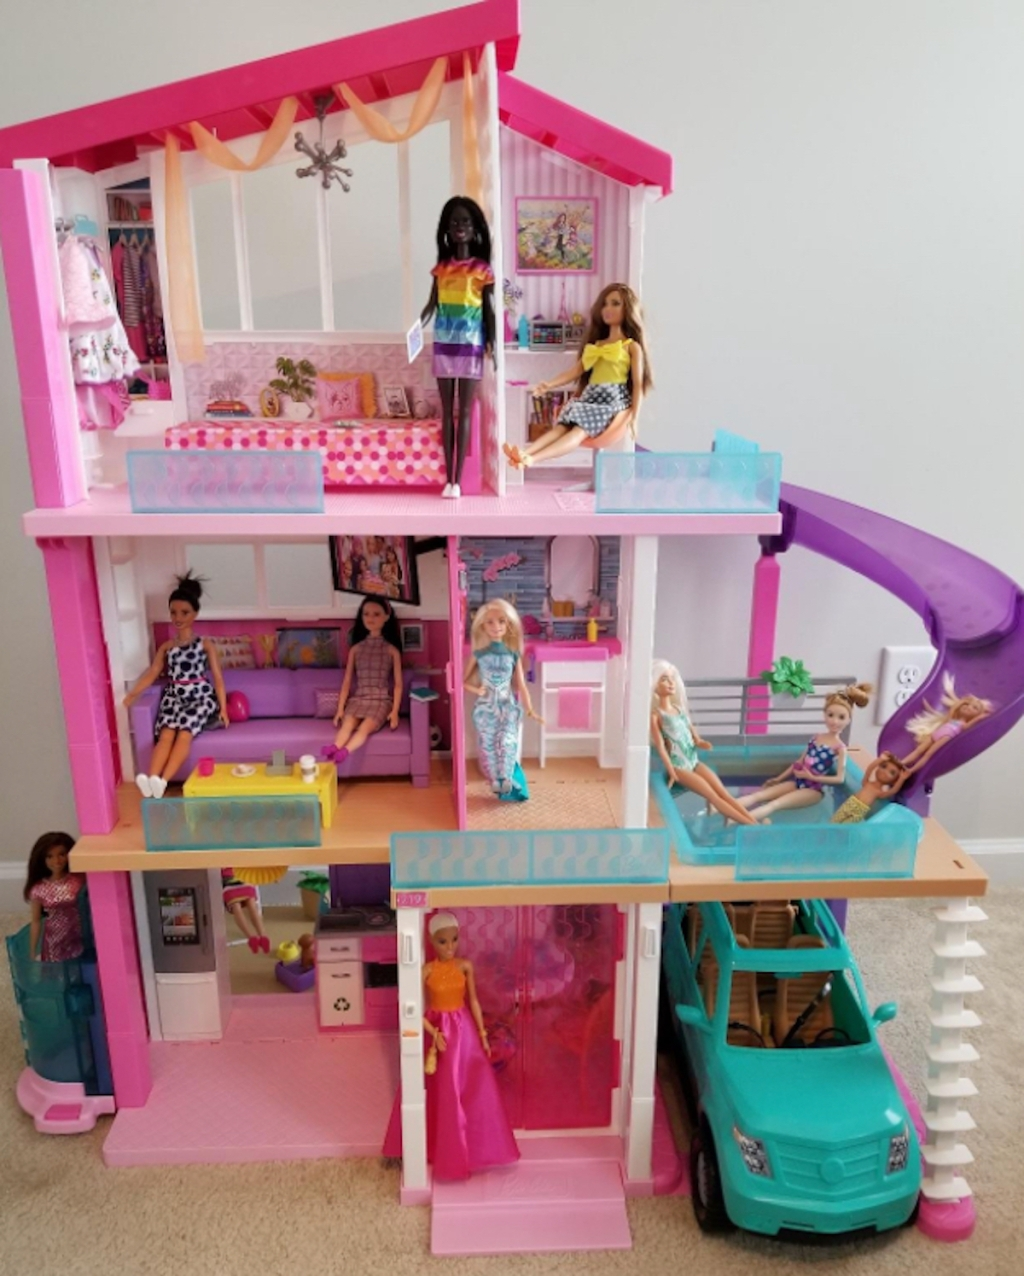 popular kids toys christmas 2020 pink barbie dreamhouse with accessories and dolls